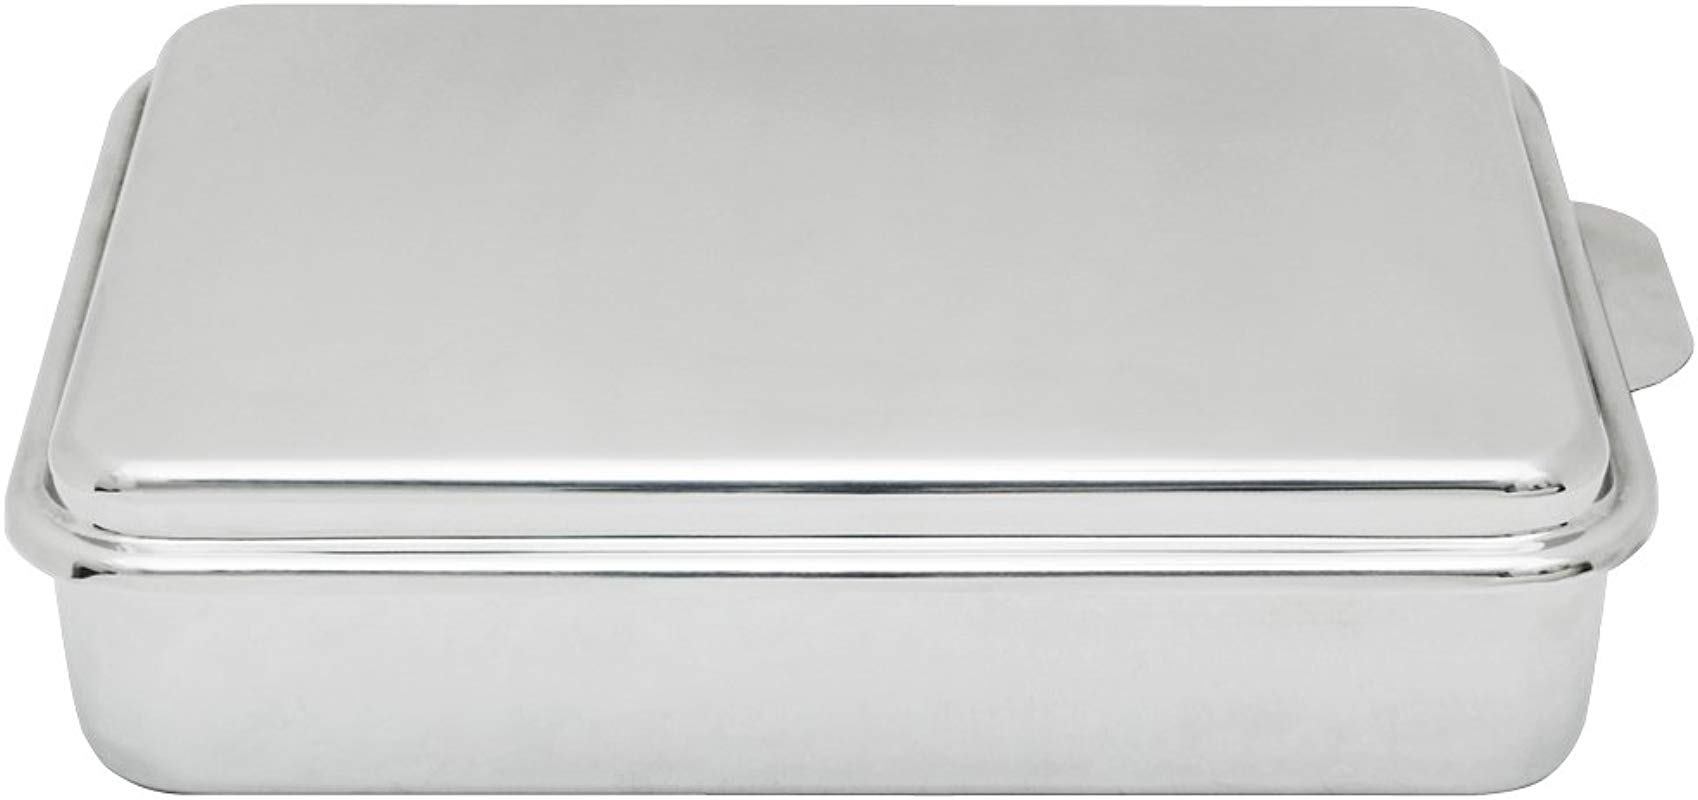 Lindy S Stainless Steel 9 X 13 Inches Covered Cake Pan Silver